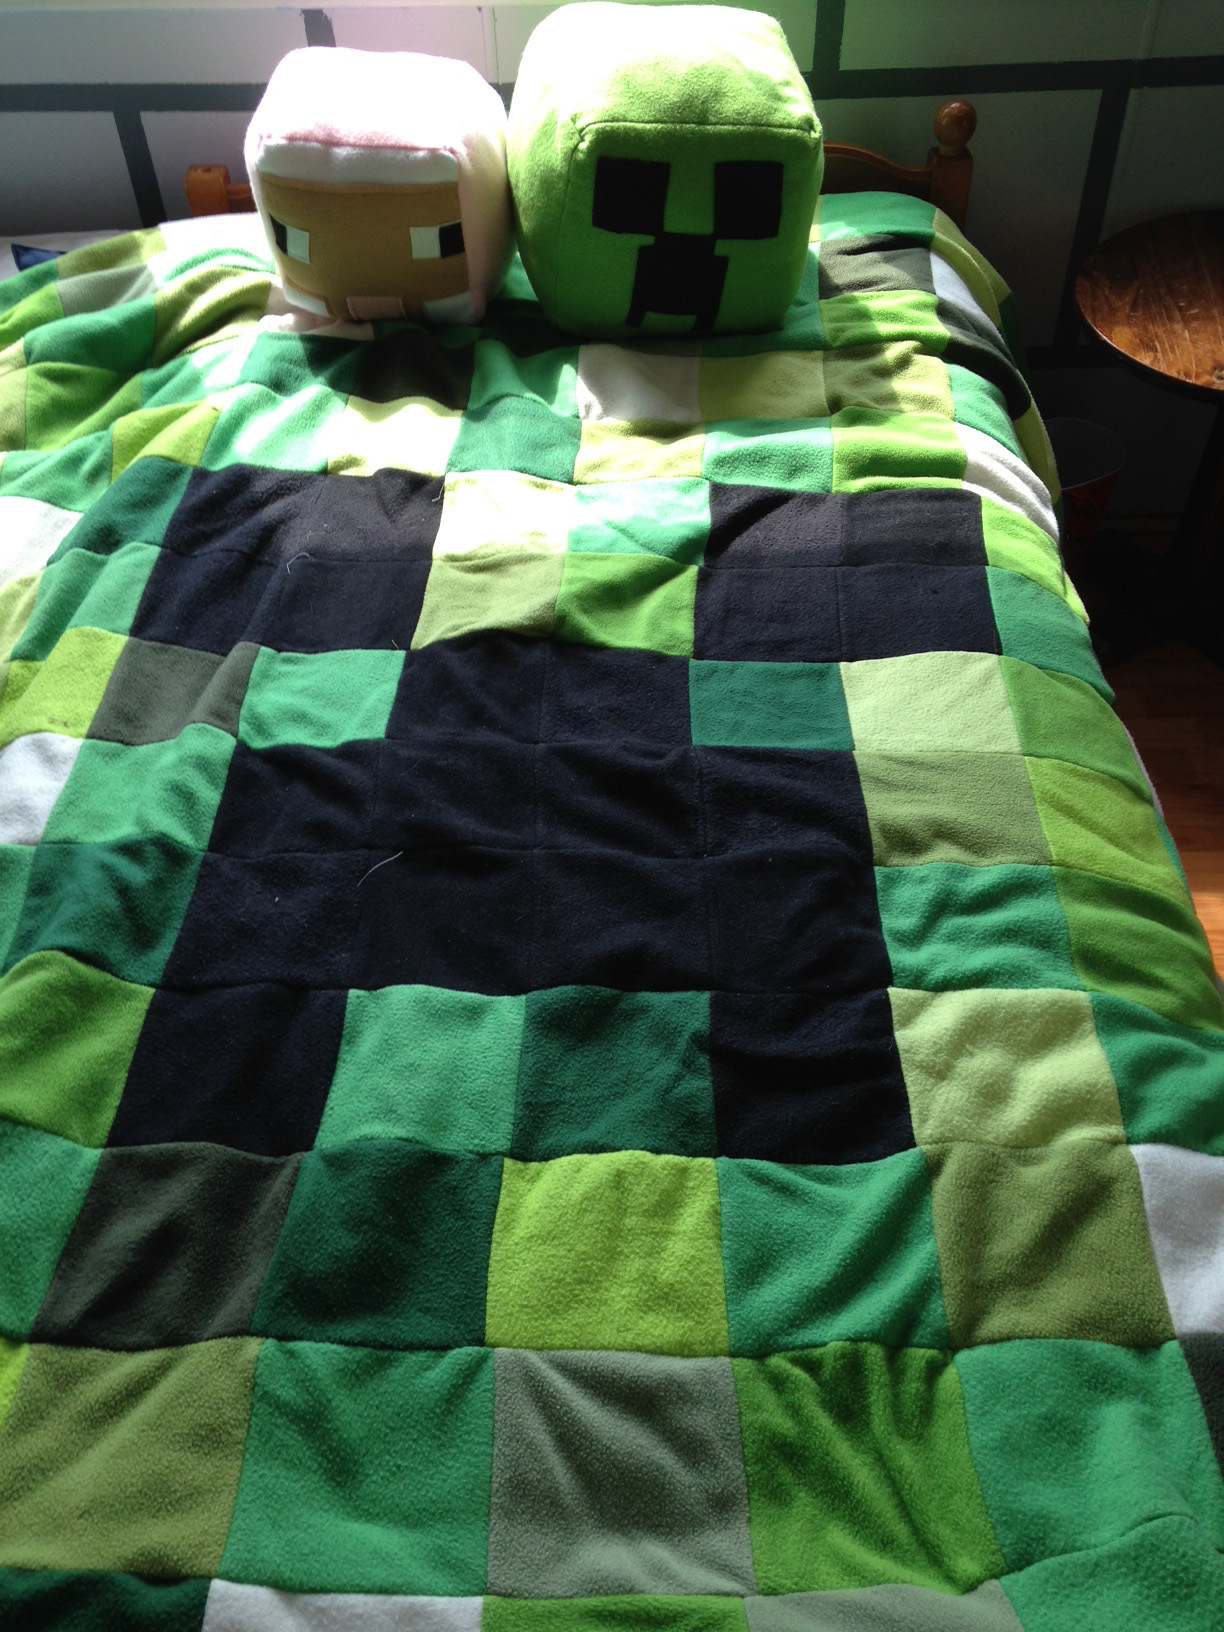 Minecraft Bedroom Ideas In Real Life This is the minecraft quilt i 1224x1632